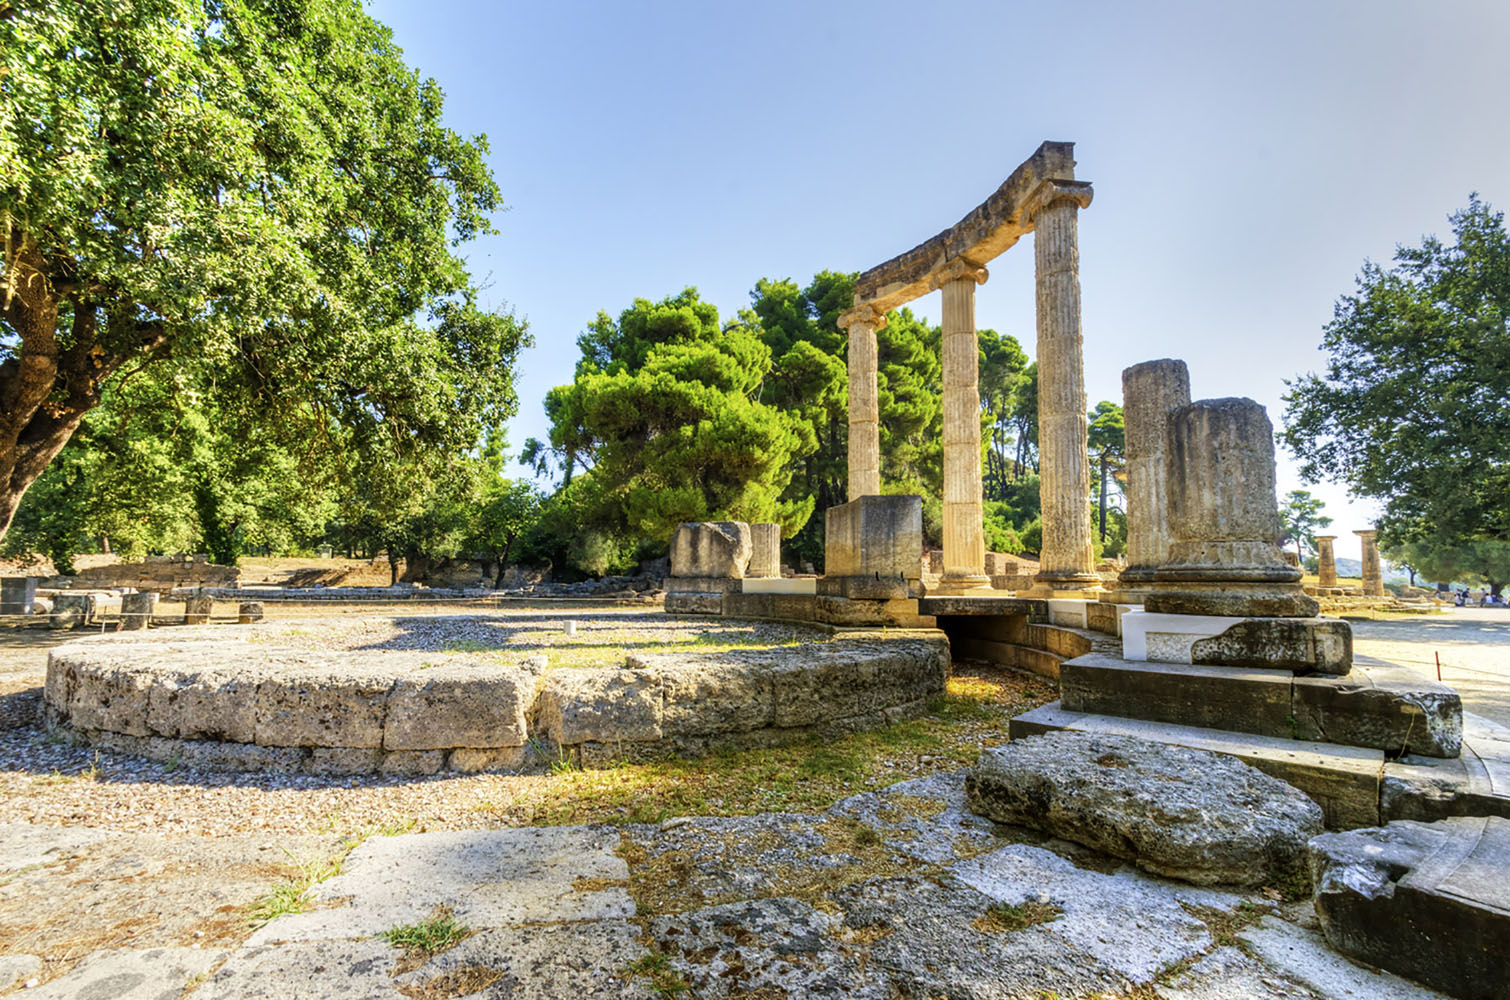 Ruins of the ancient site of Olympia. Greece